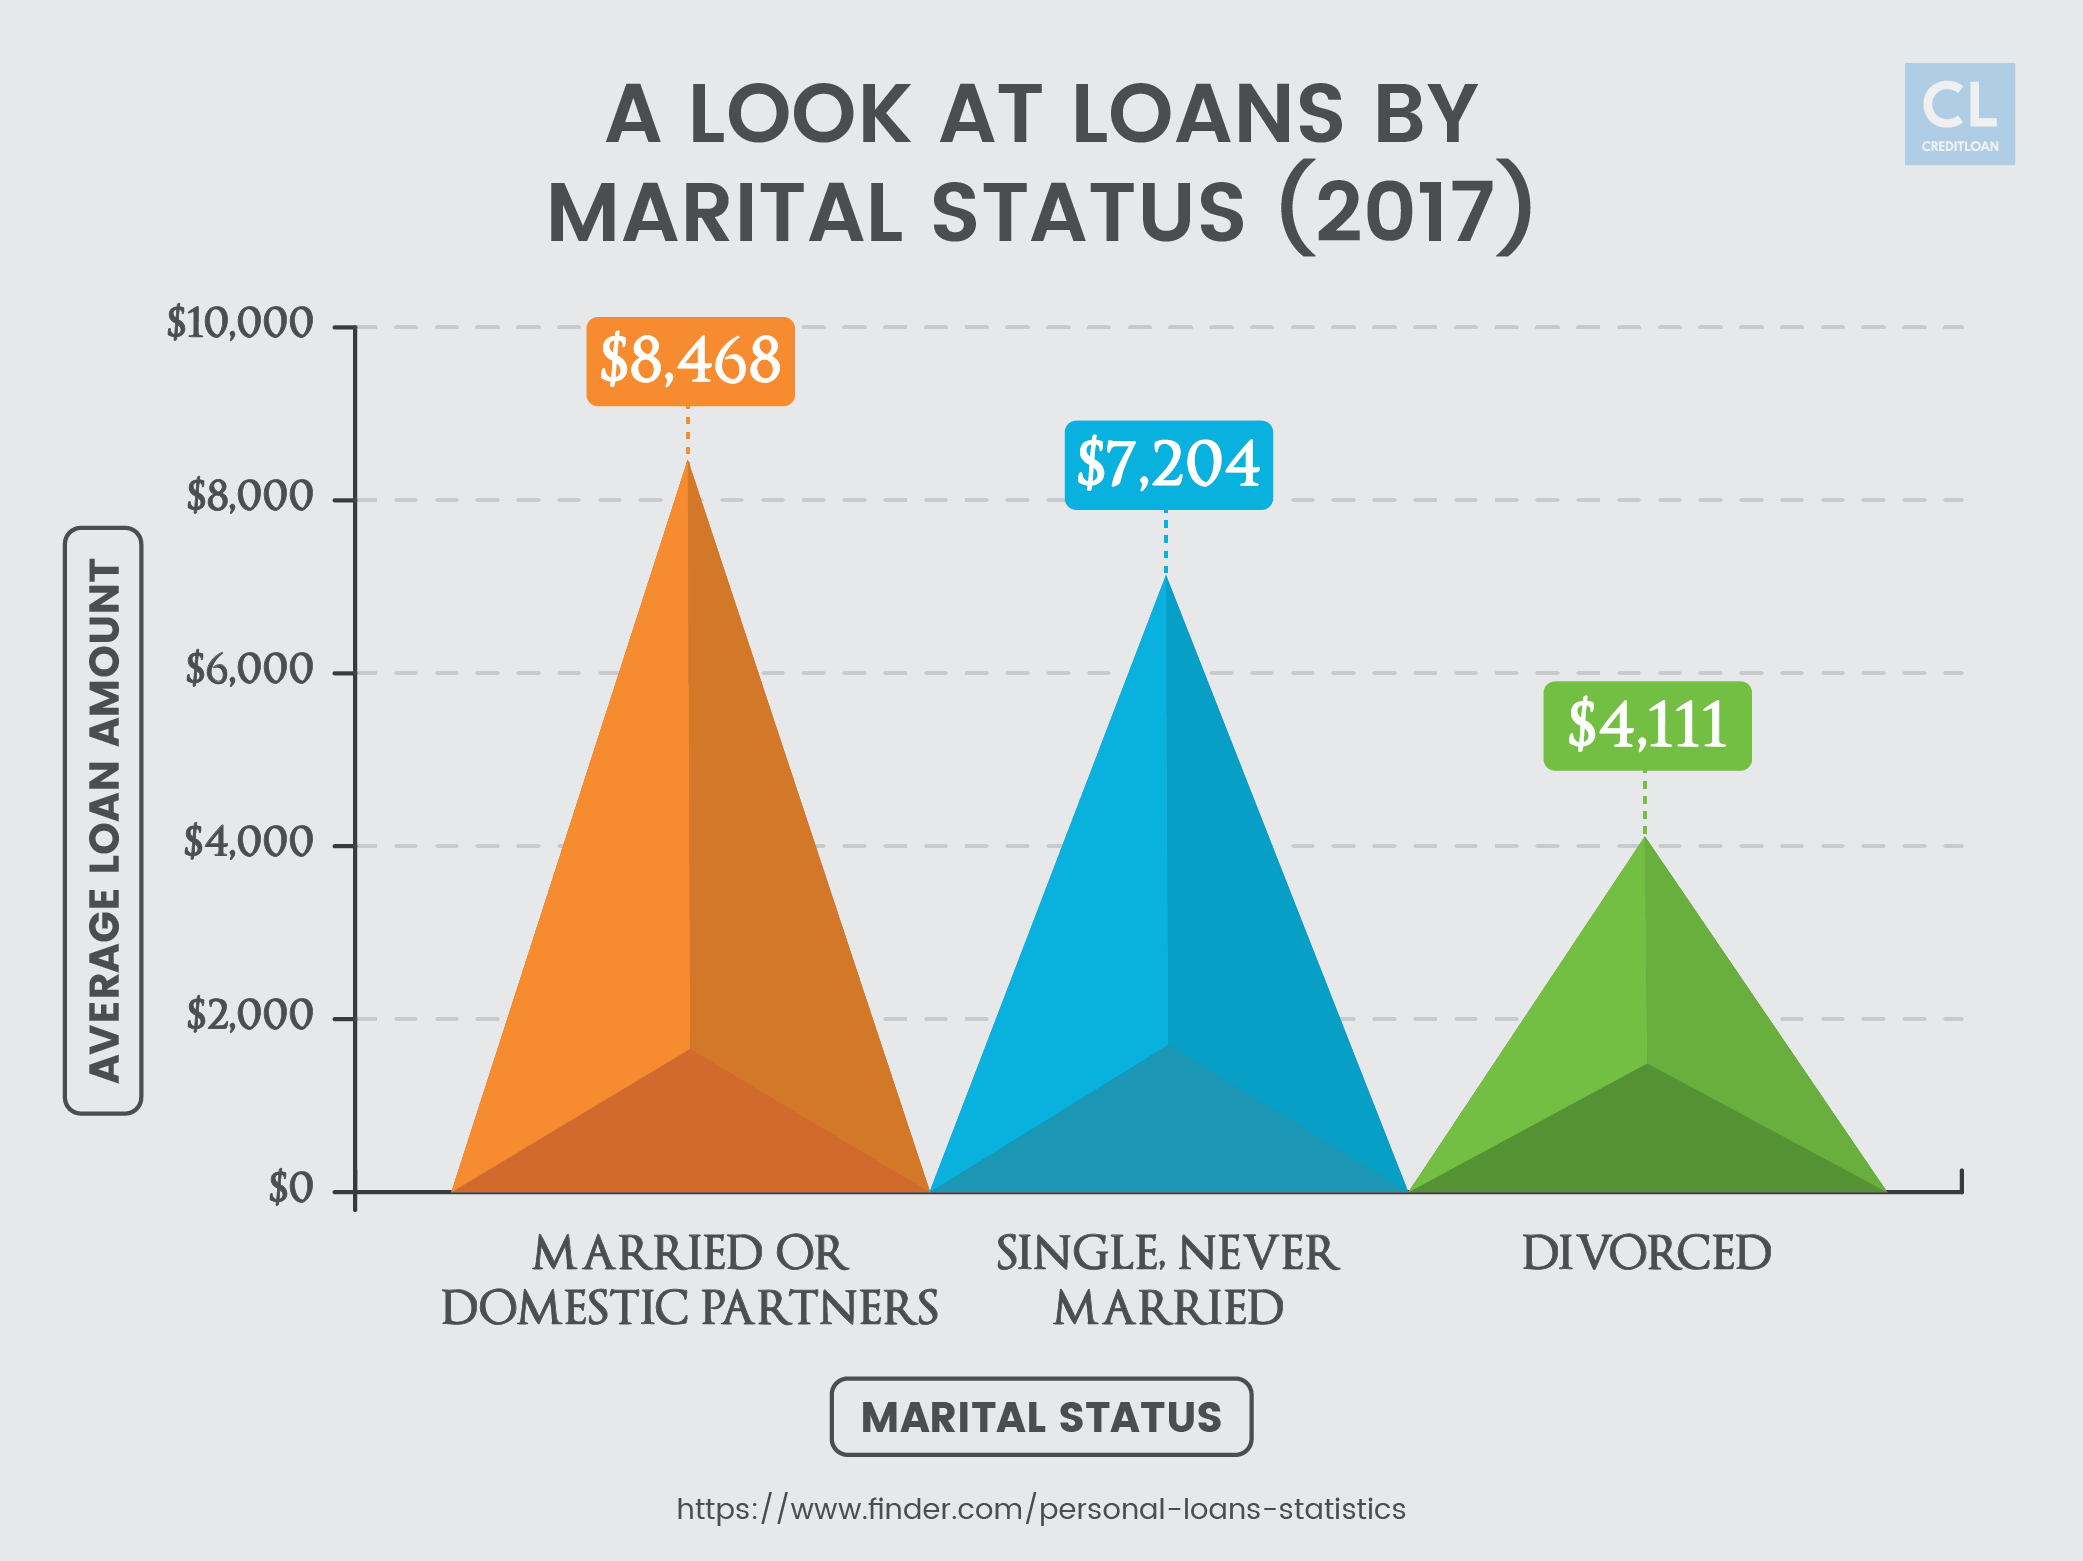 2017 Data Showing Loans by Marital Status